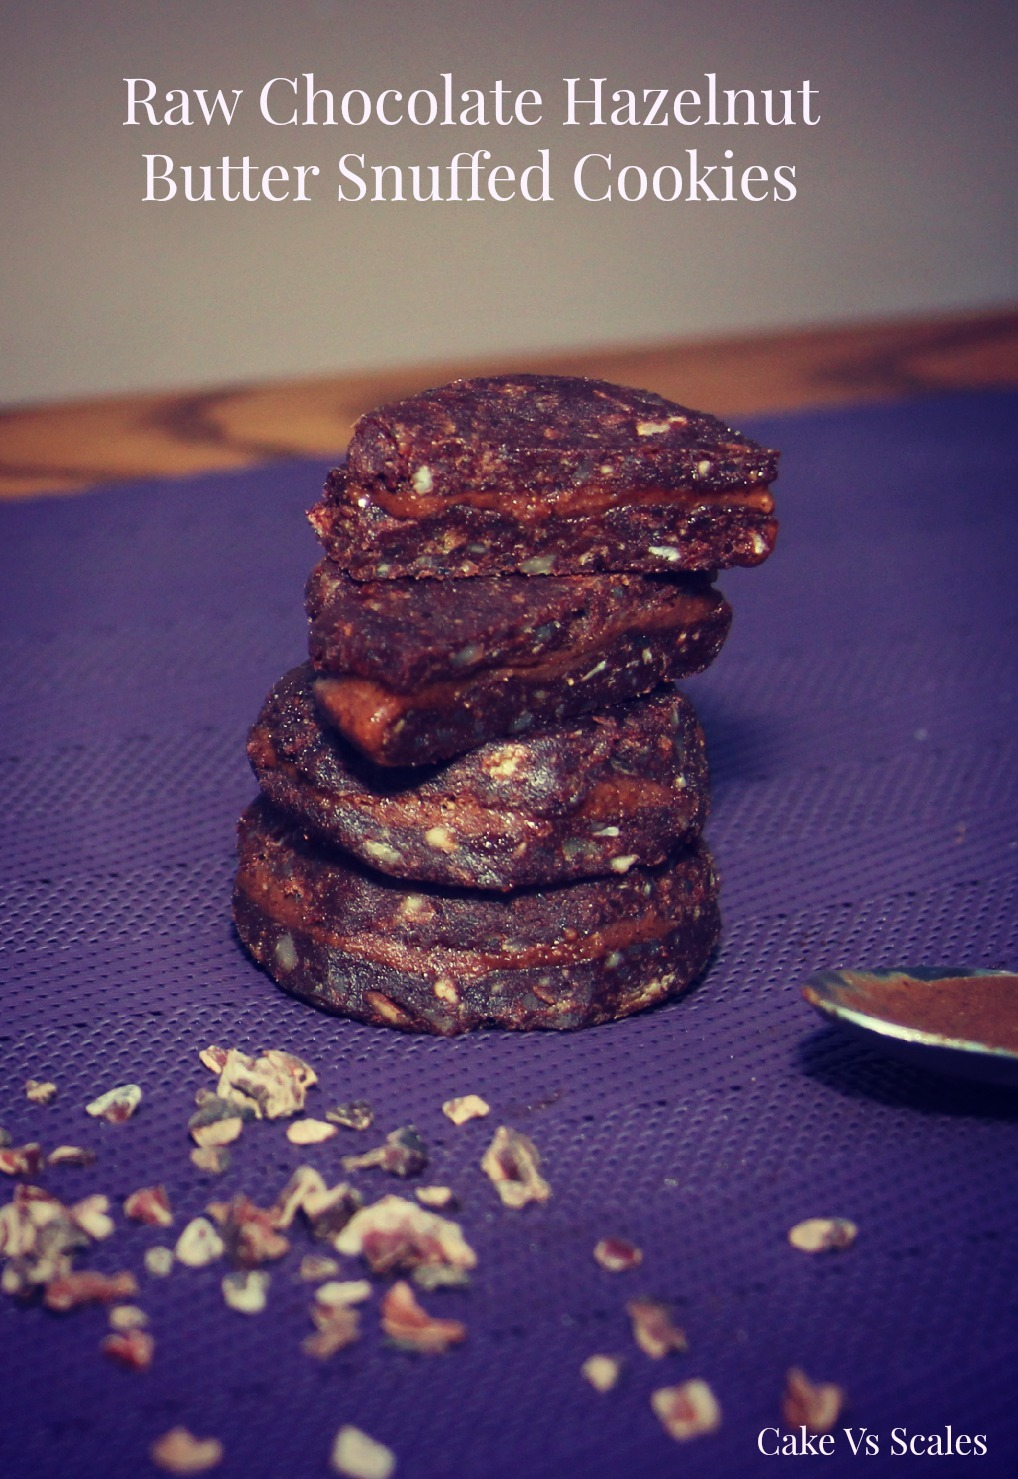 Raw Chocolate cookies with a 'Nutella' style filling